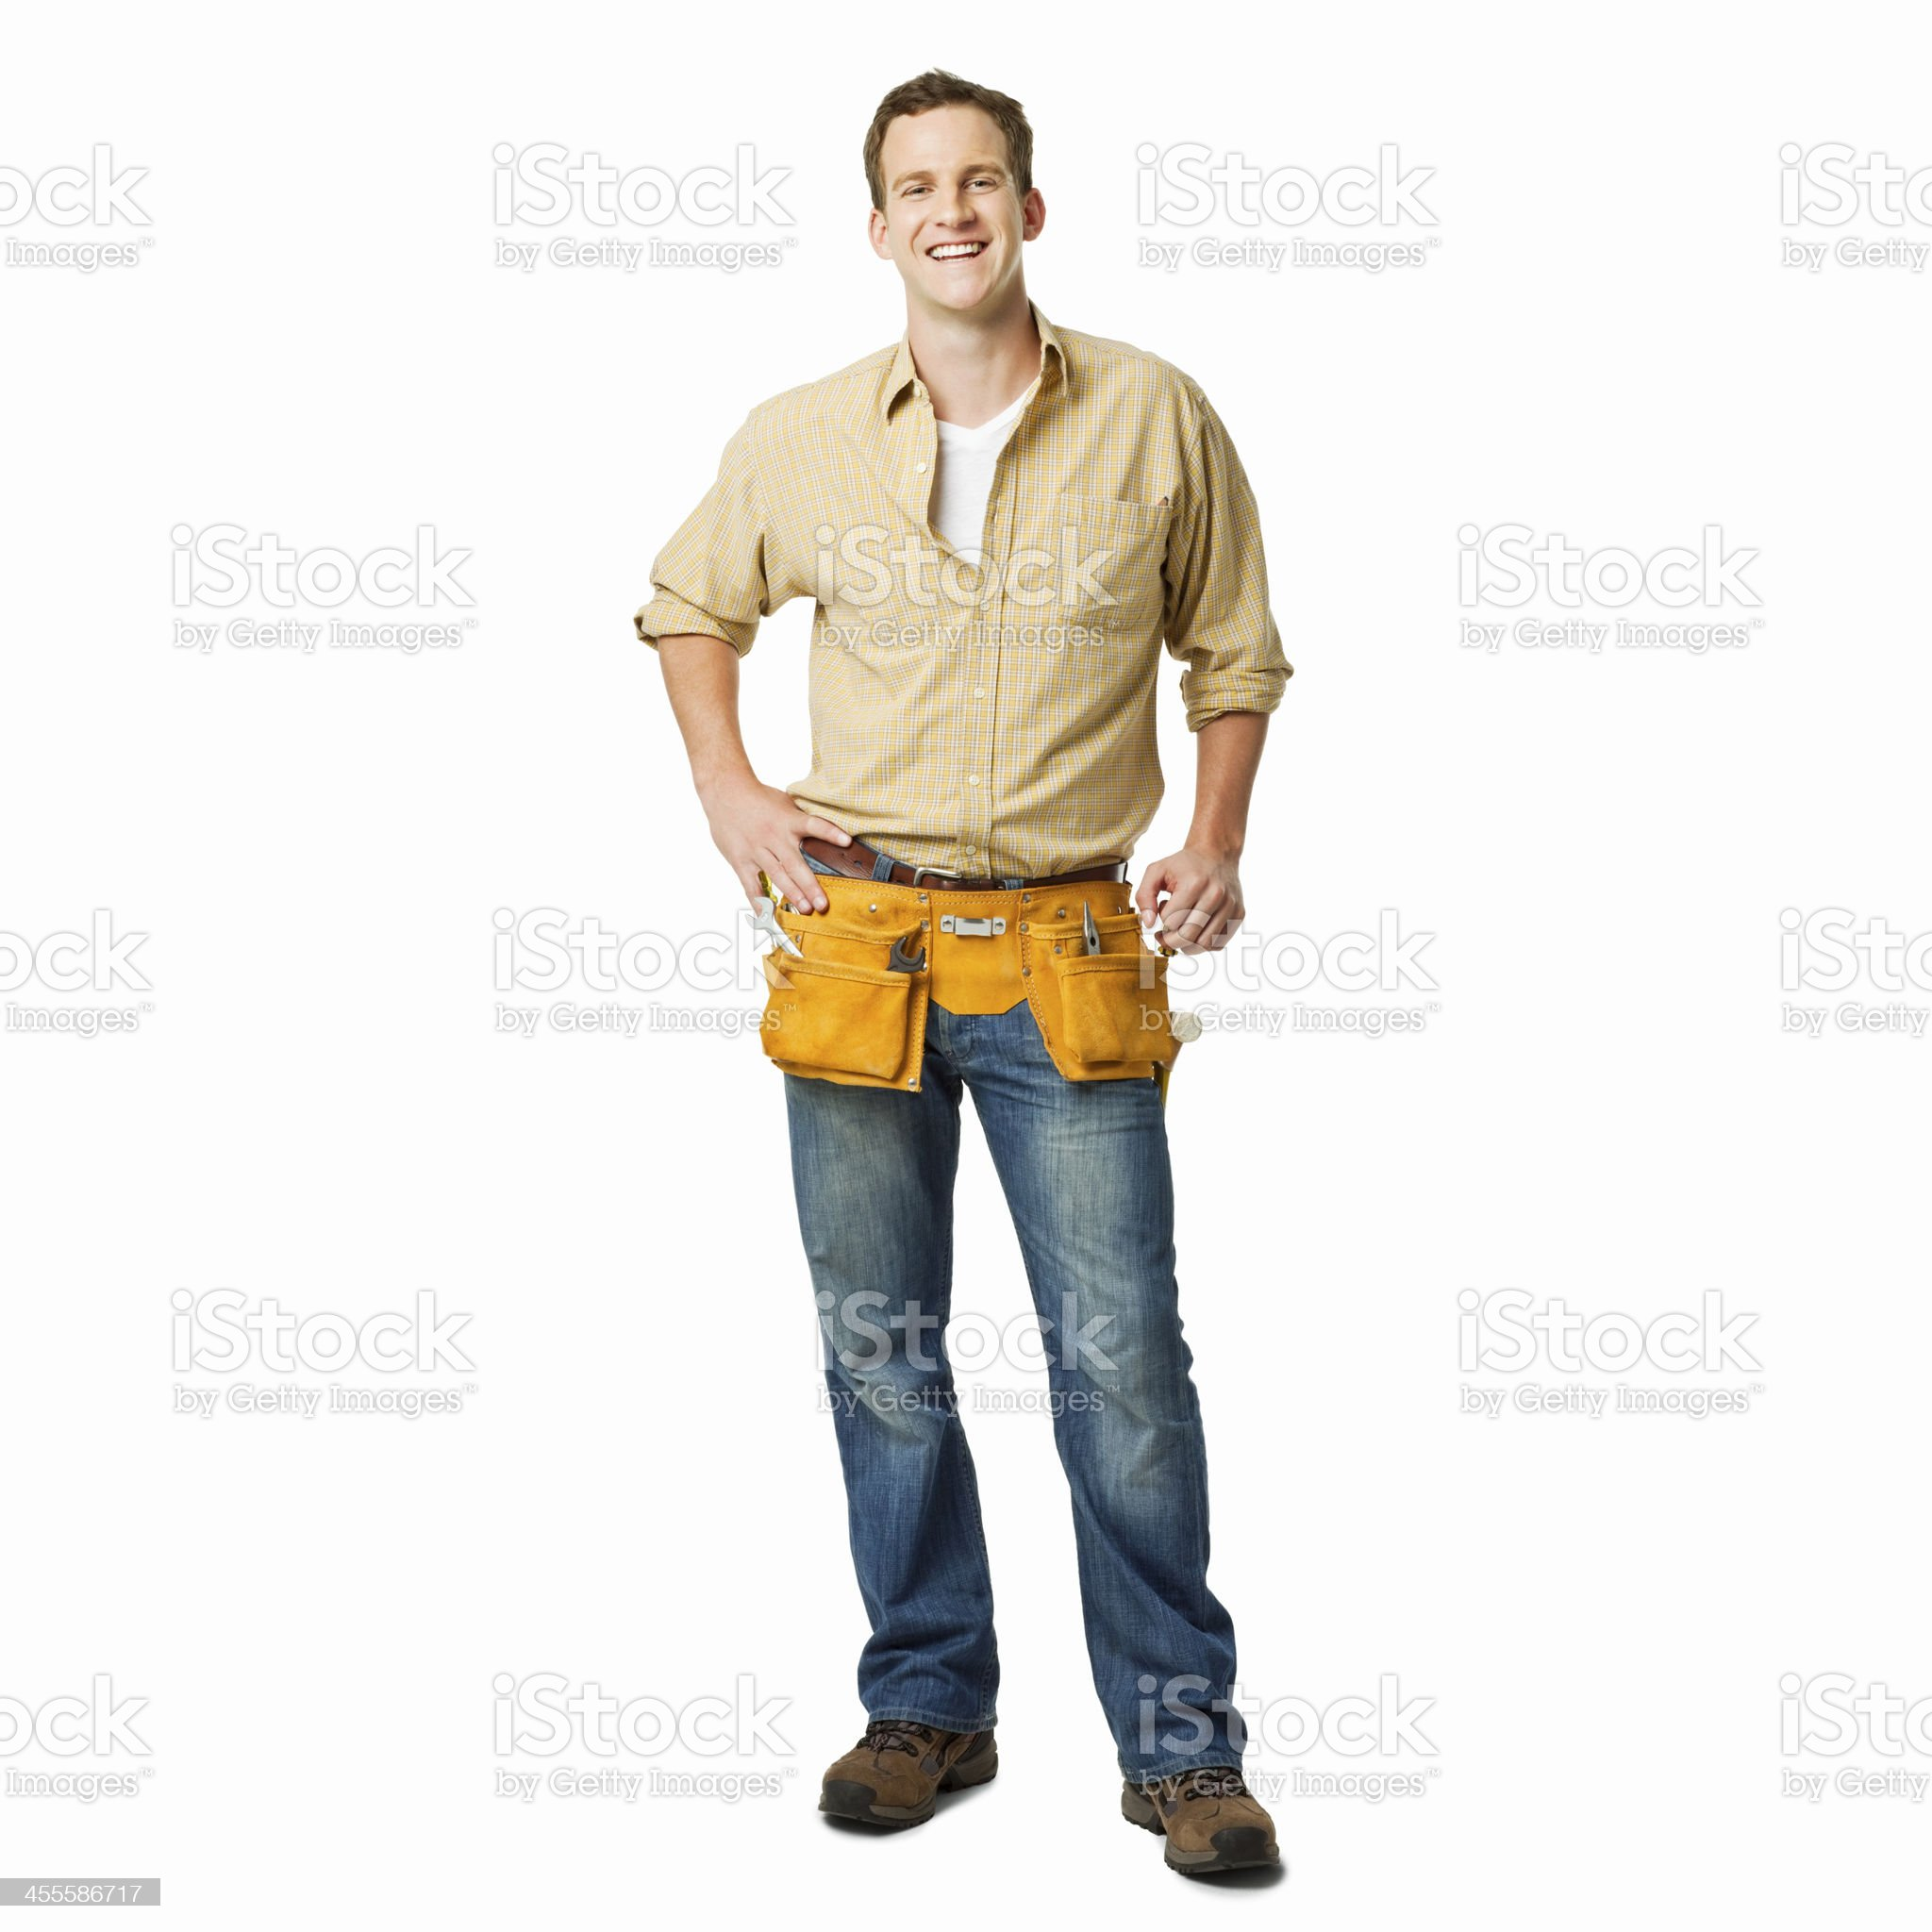 Portrait of a Young Repairman - Isolated royalty-free stock photo